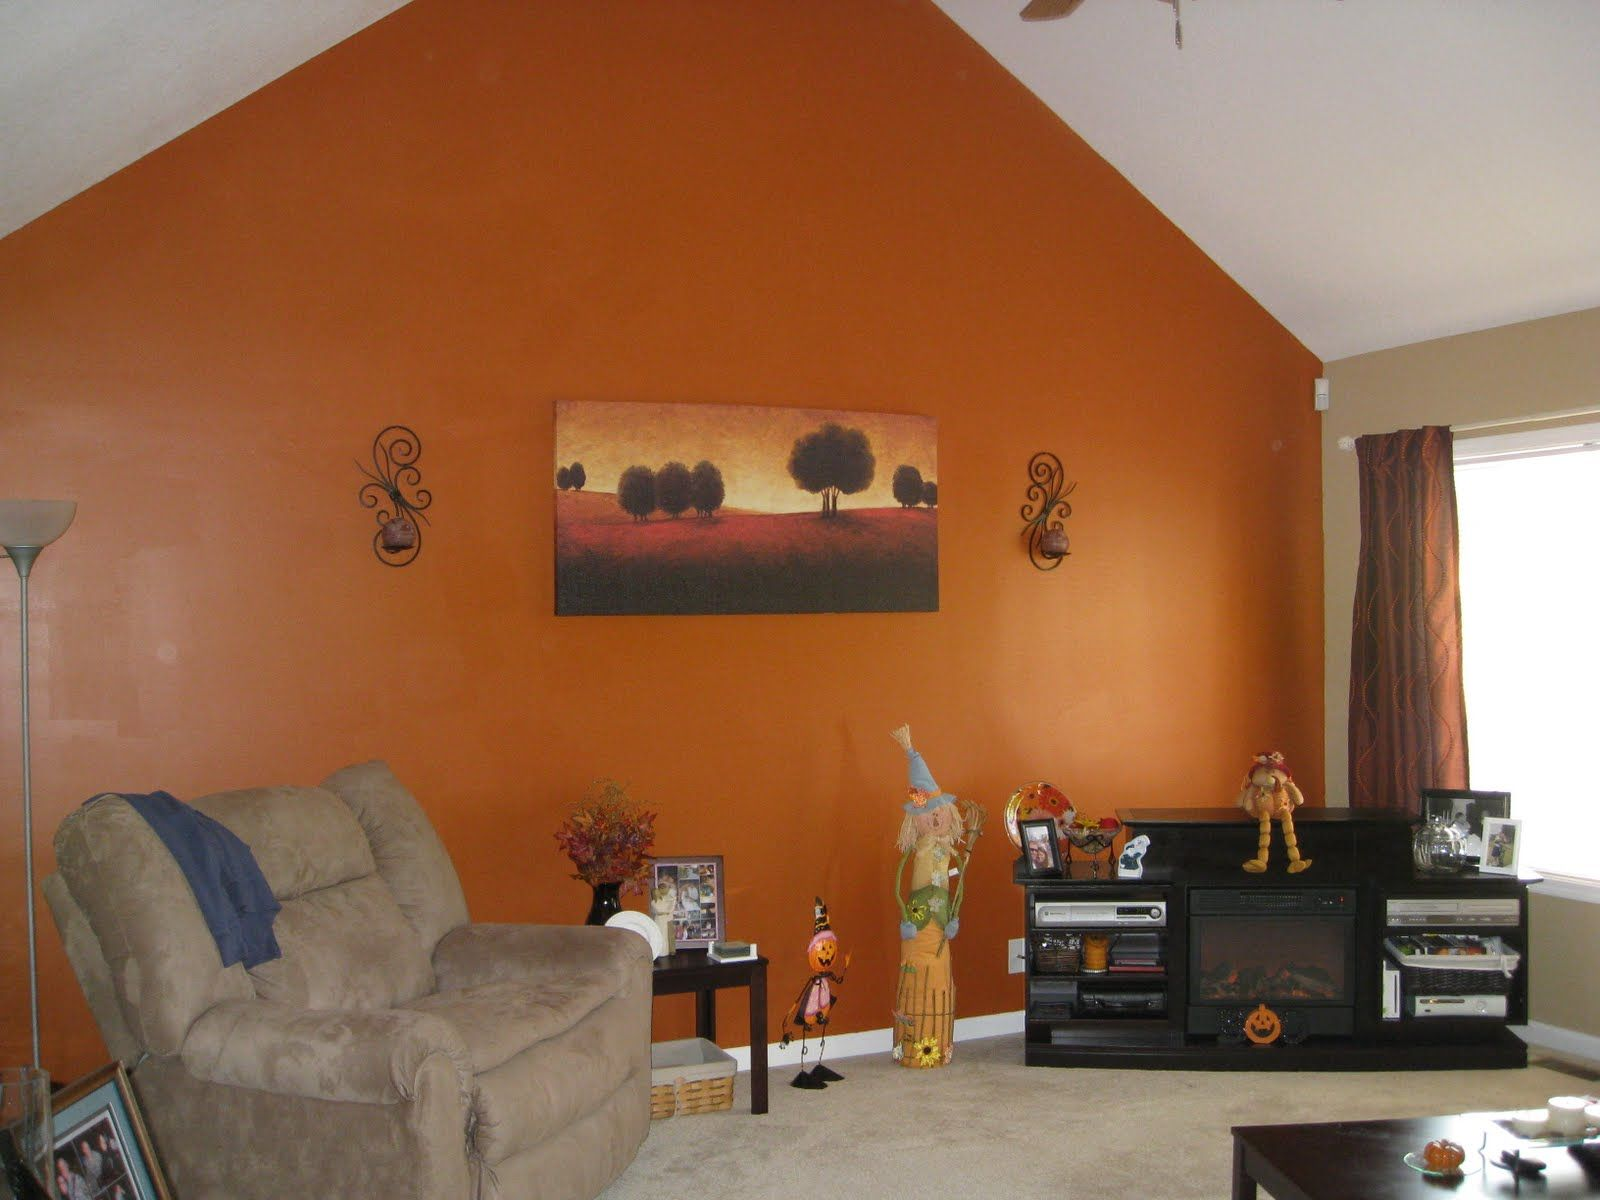 Pin By Shirley Smith On Paint Colors Living Room Orange Burnt Orange Living Room Decor Accent Walls In Living Room